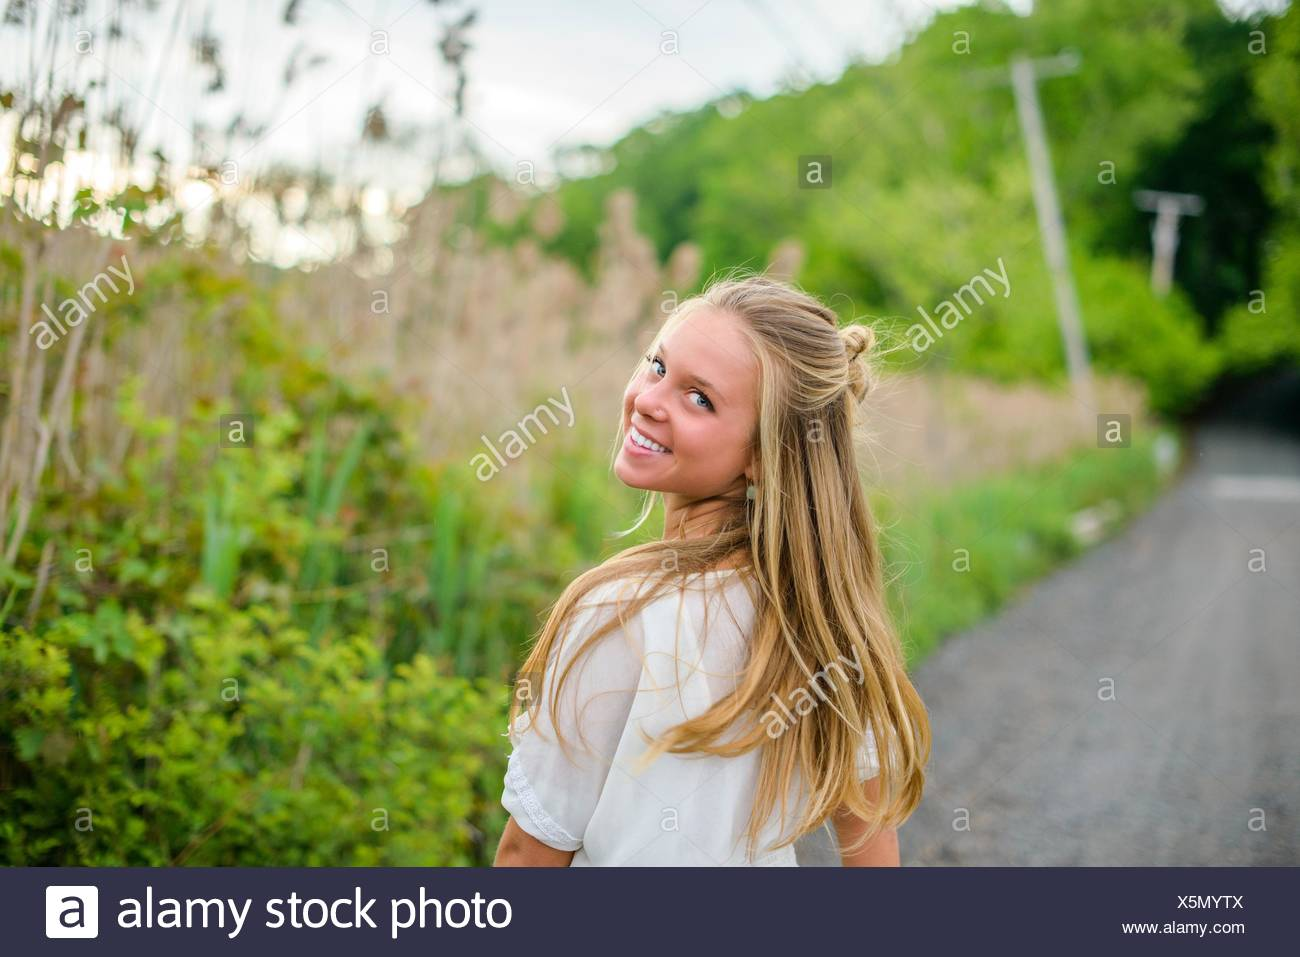 Portrait of young woman with long blond hair looking back on rural road - Stock Image